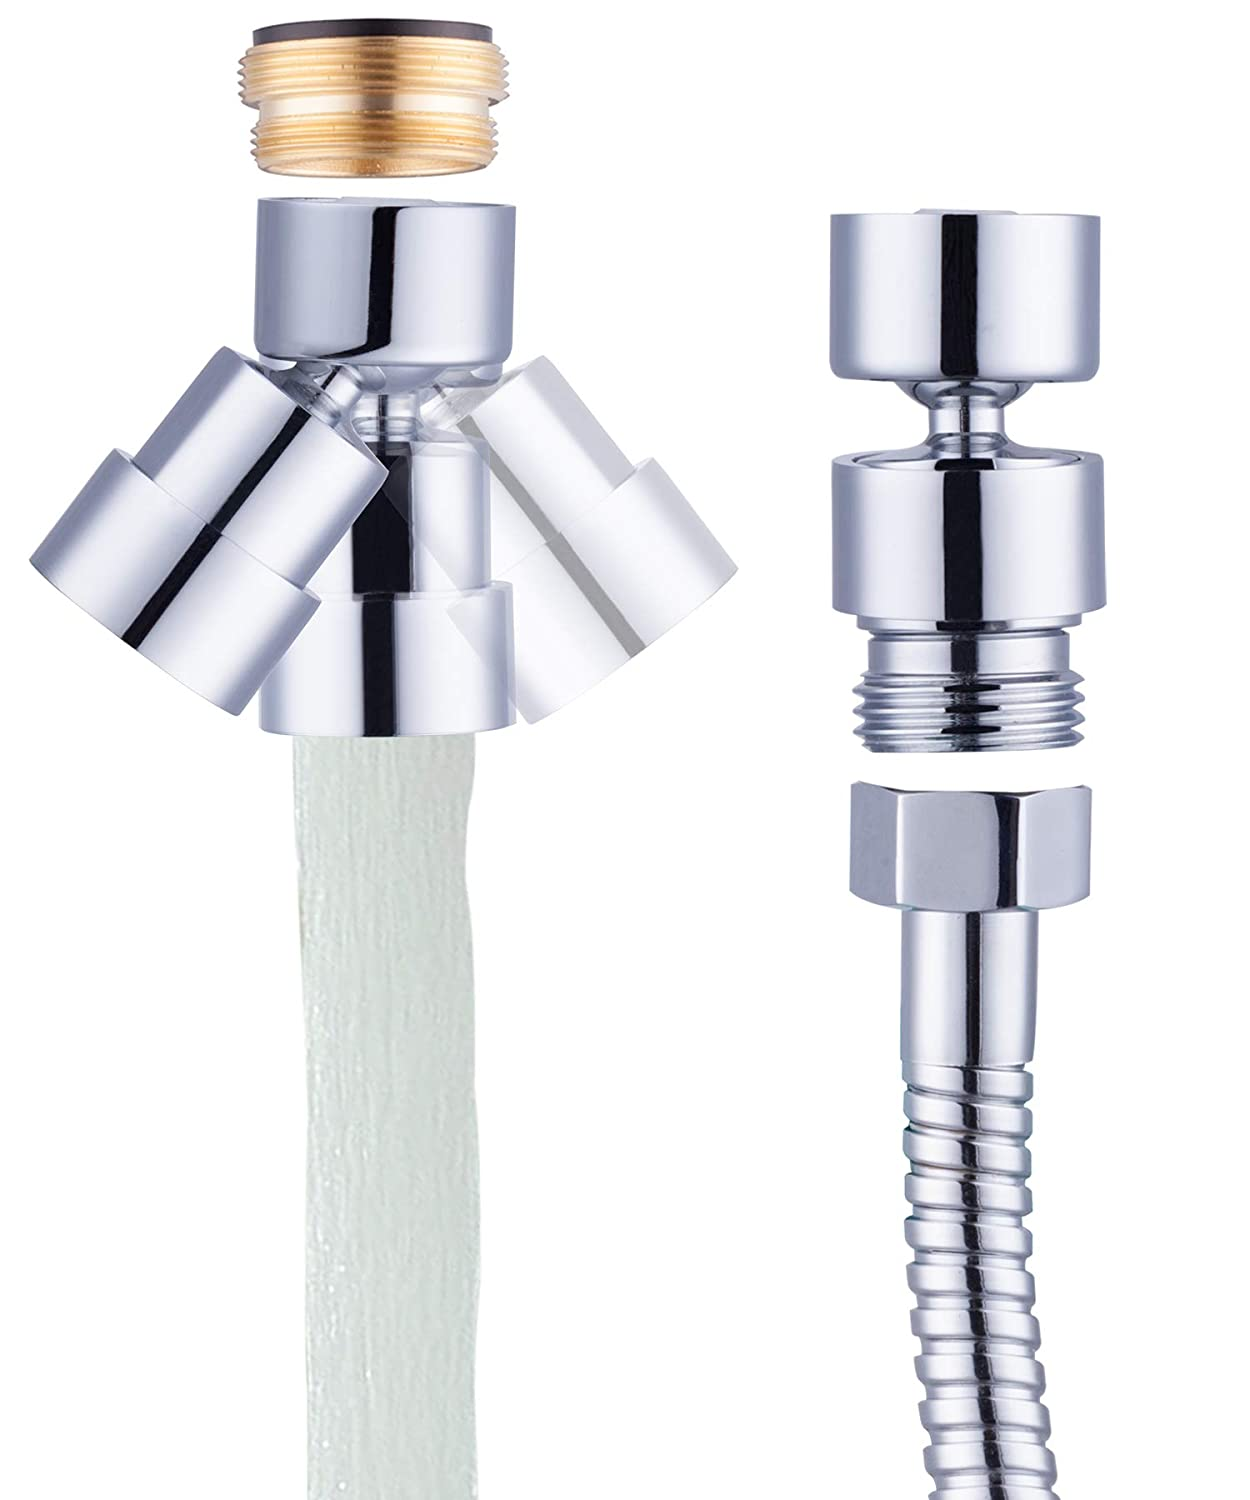 Waternymph 2 in 1 Faucet Aerator with Adapter Connect to Hose of Handhold Shower, Bidet and other G1/2 Thread Hose, Big Angle Swivel Aerator with Movable Lid to Cover the G 1/2 Thread -Polished Chrome